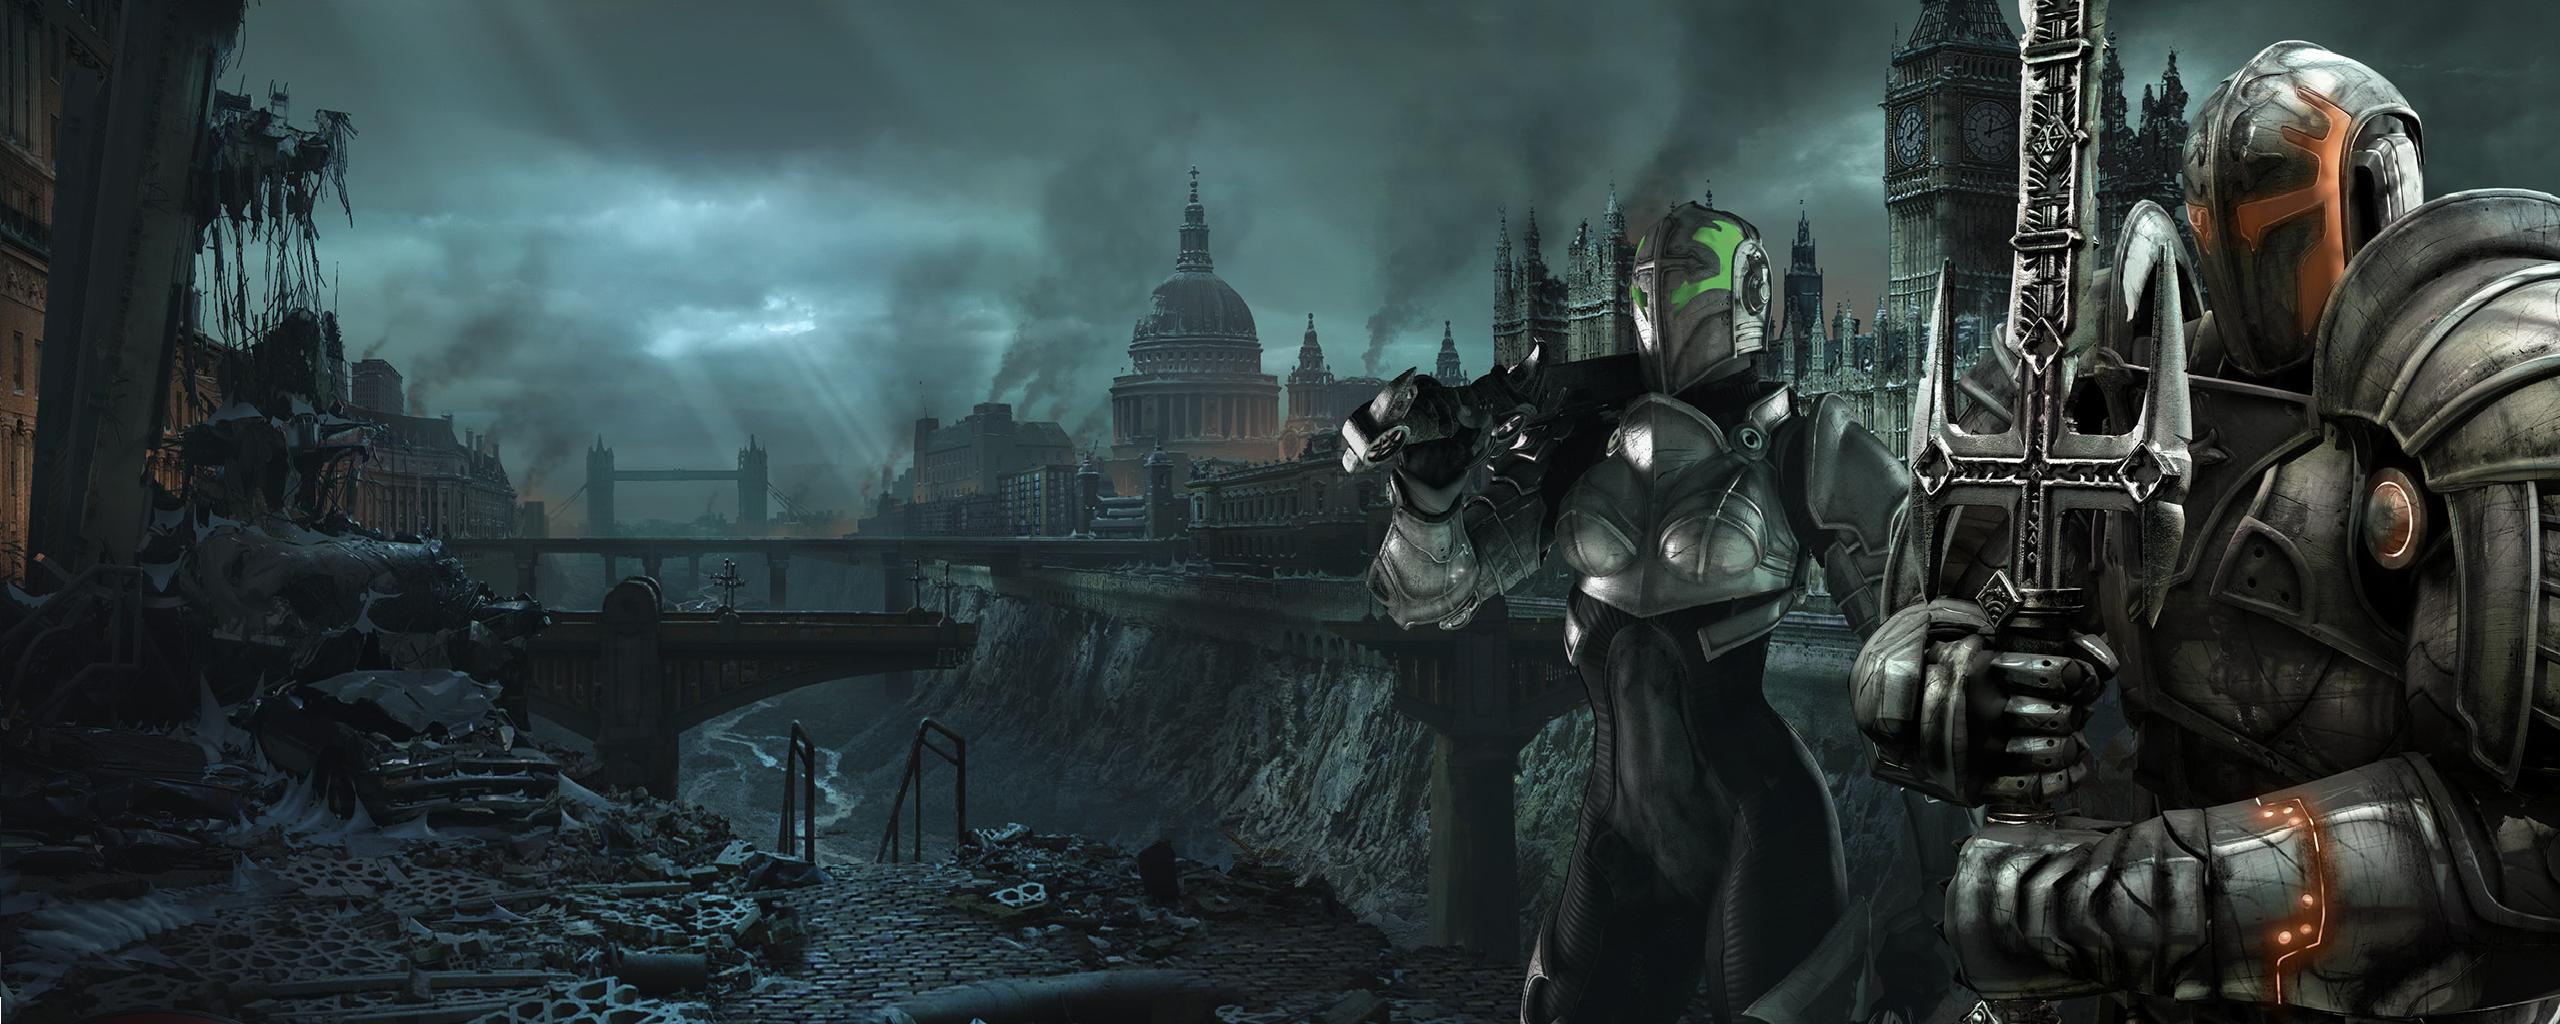 Hellgate London Will Be Released On November 15th System